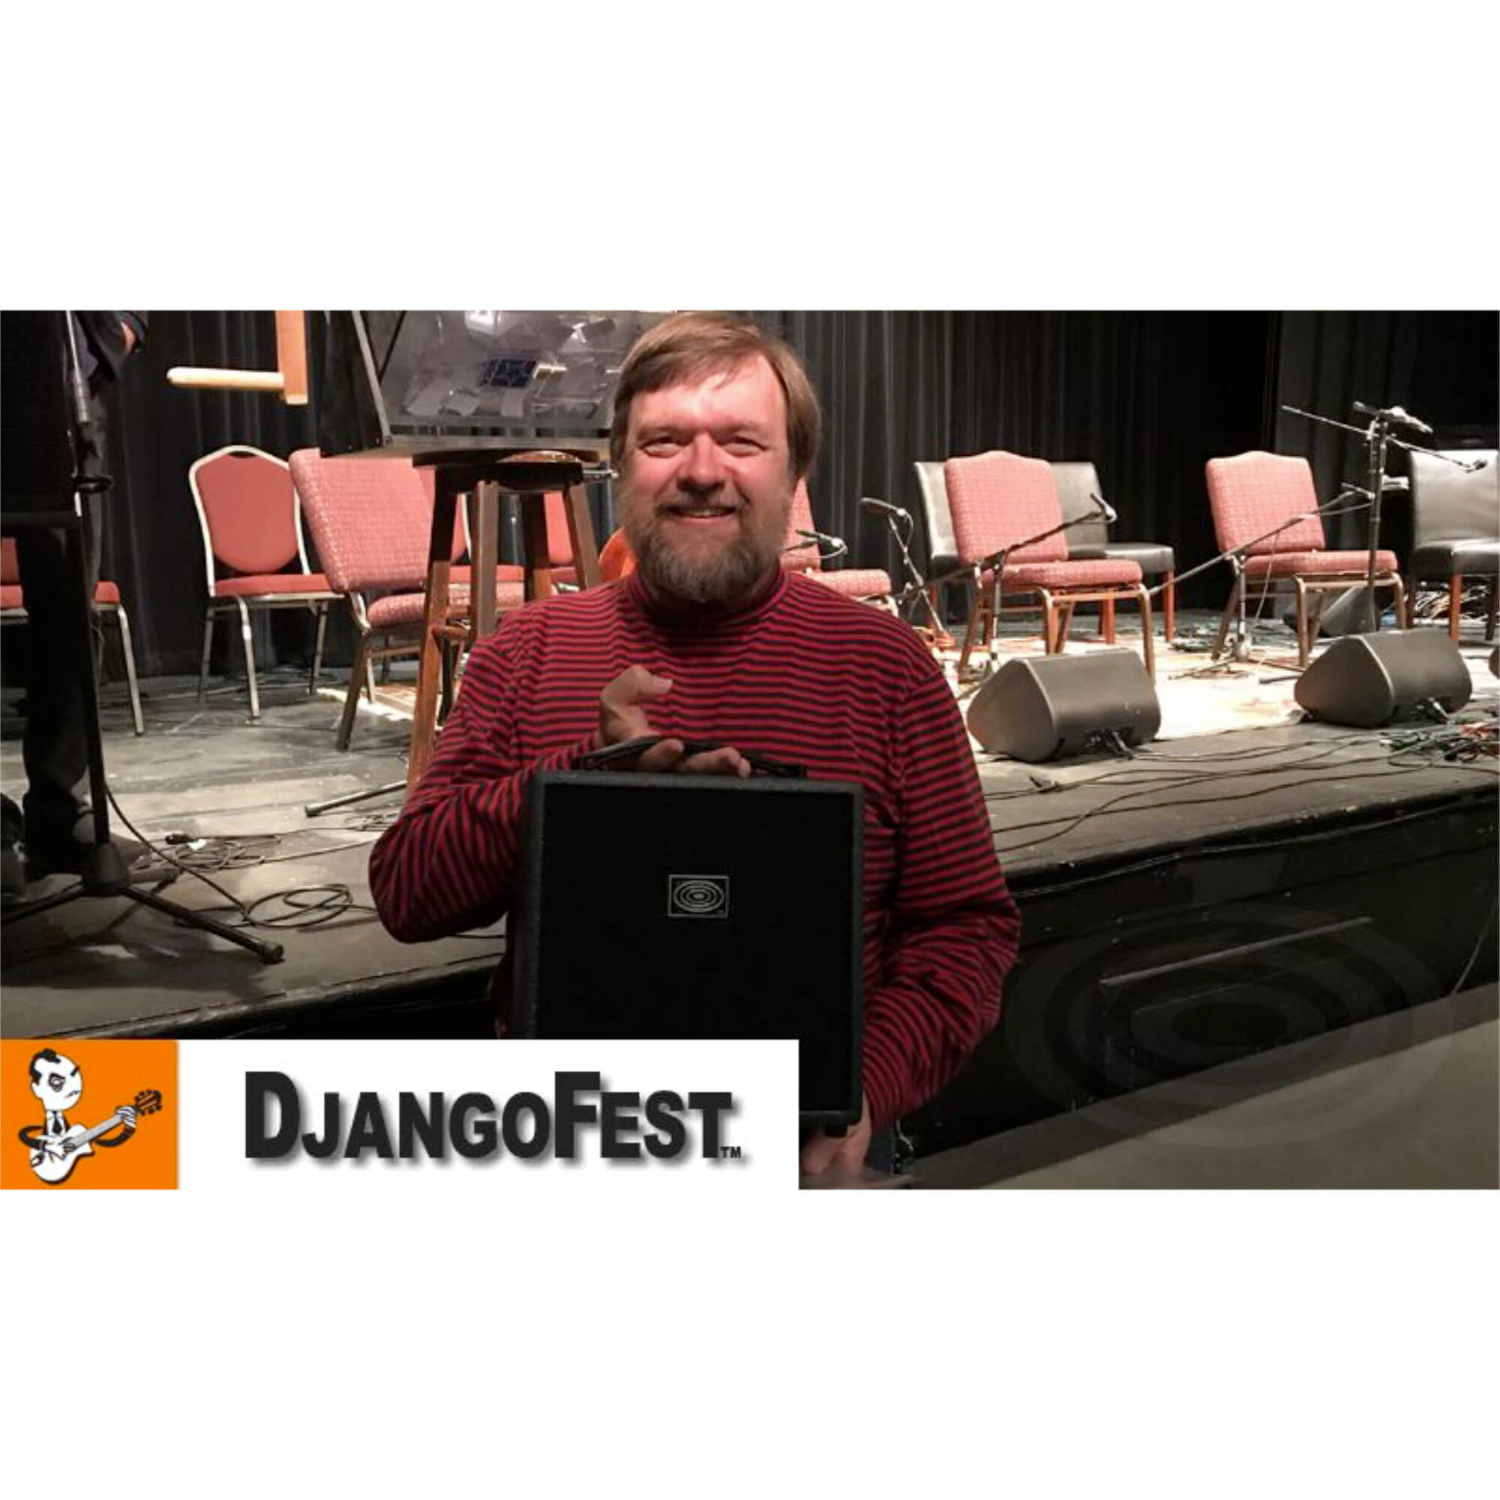 djangofest_auction_800x469.jpg